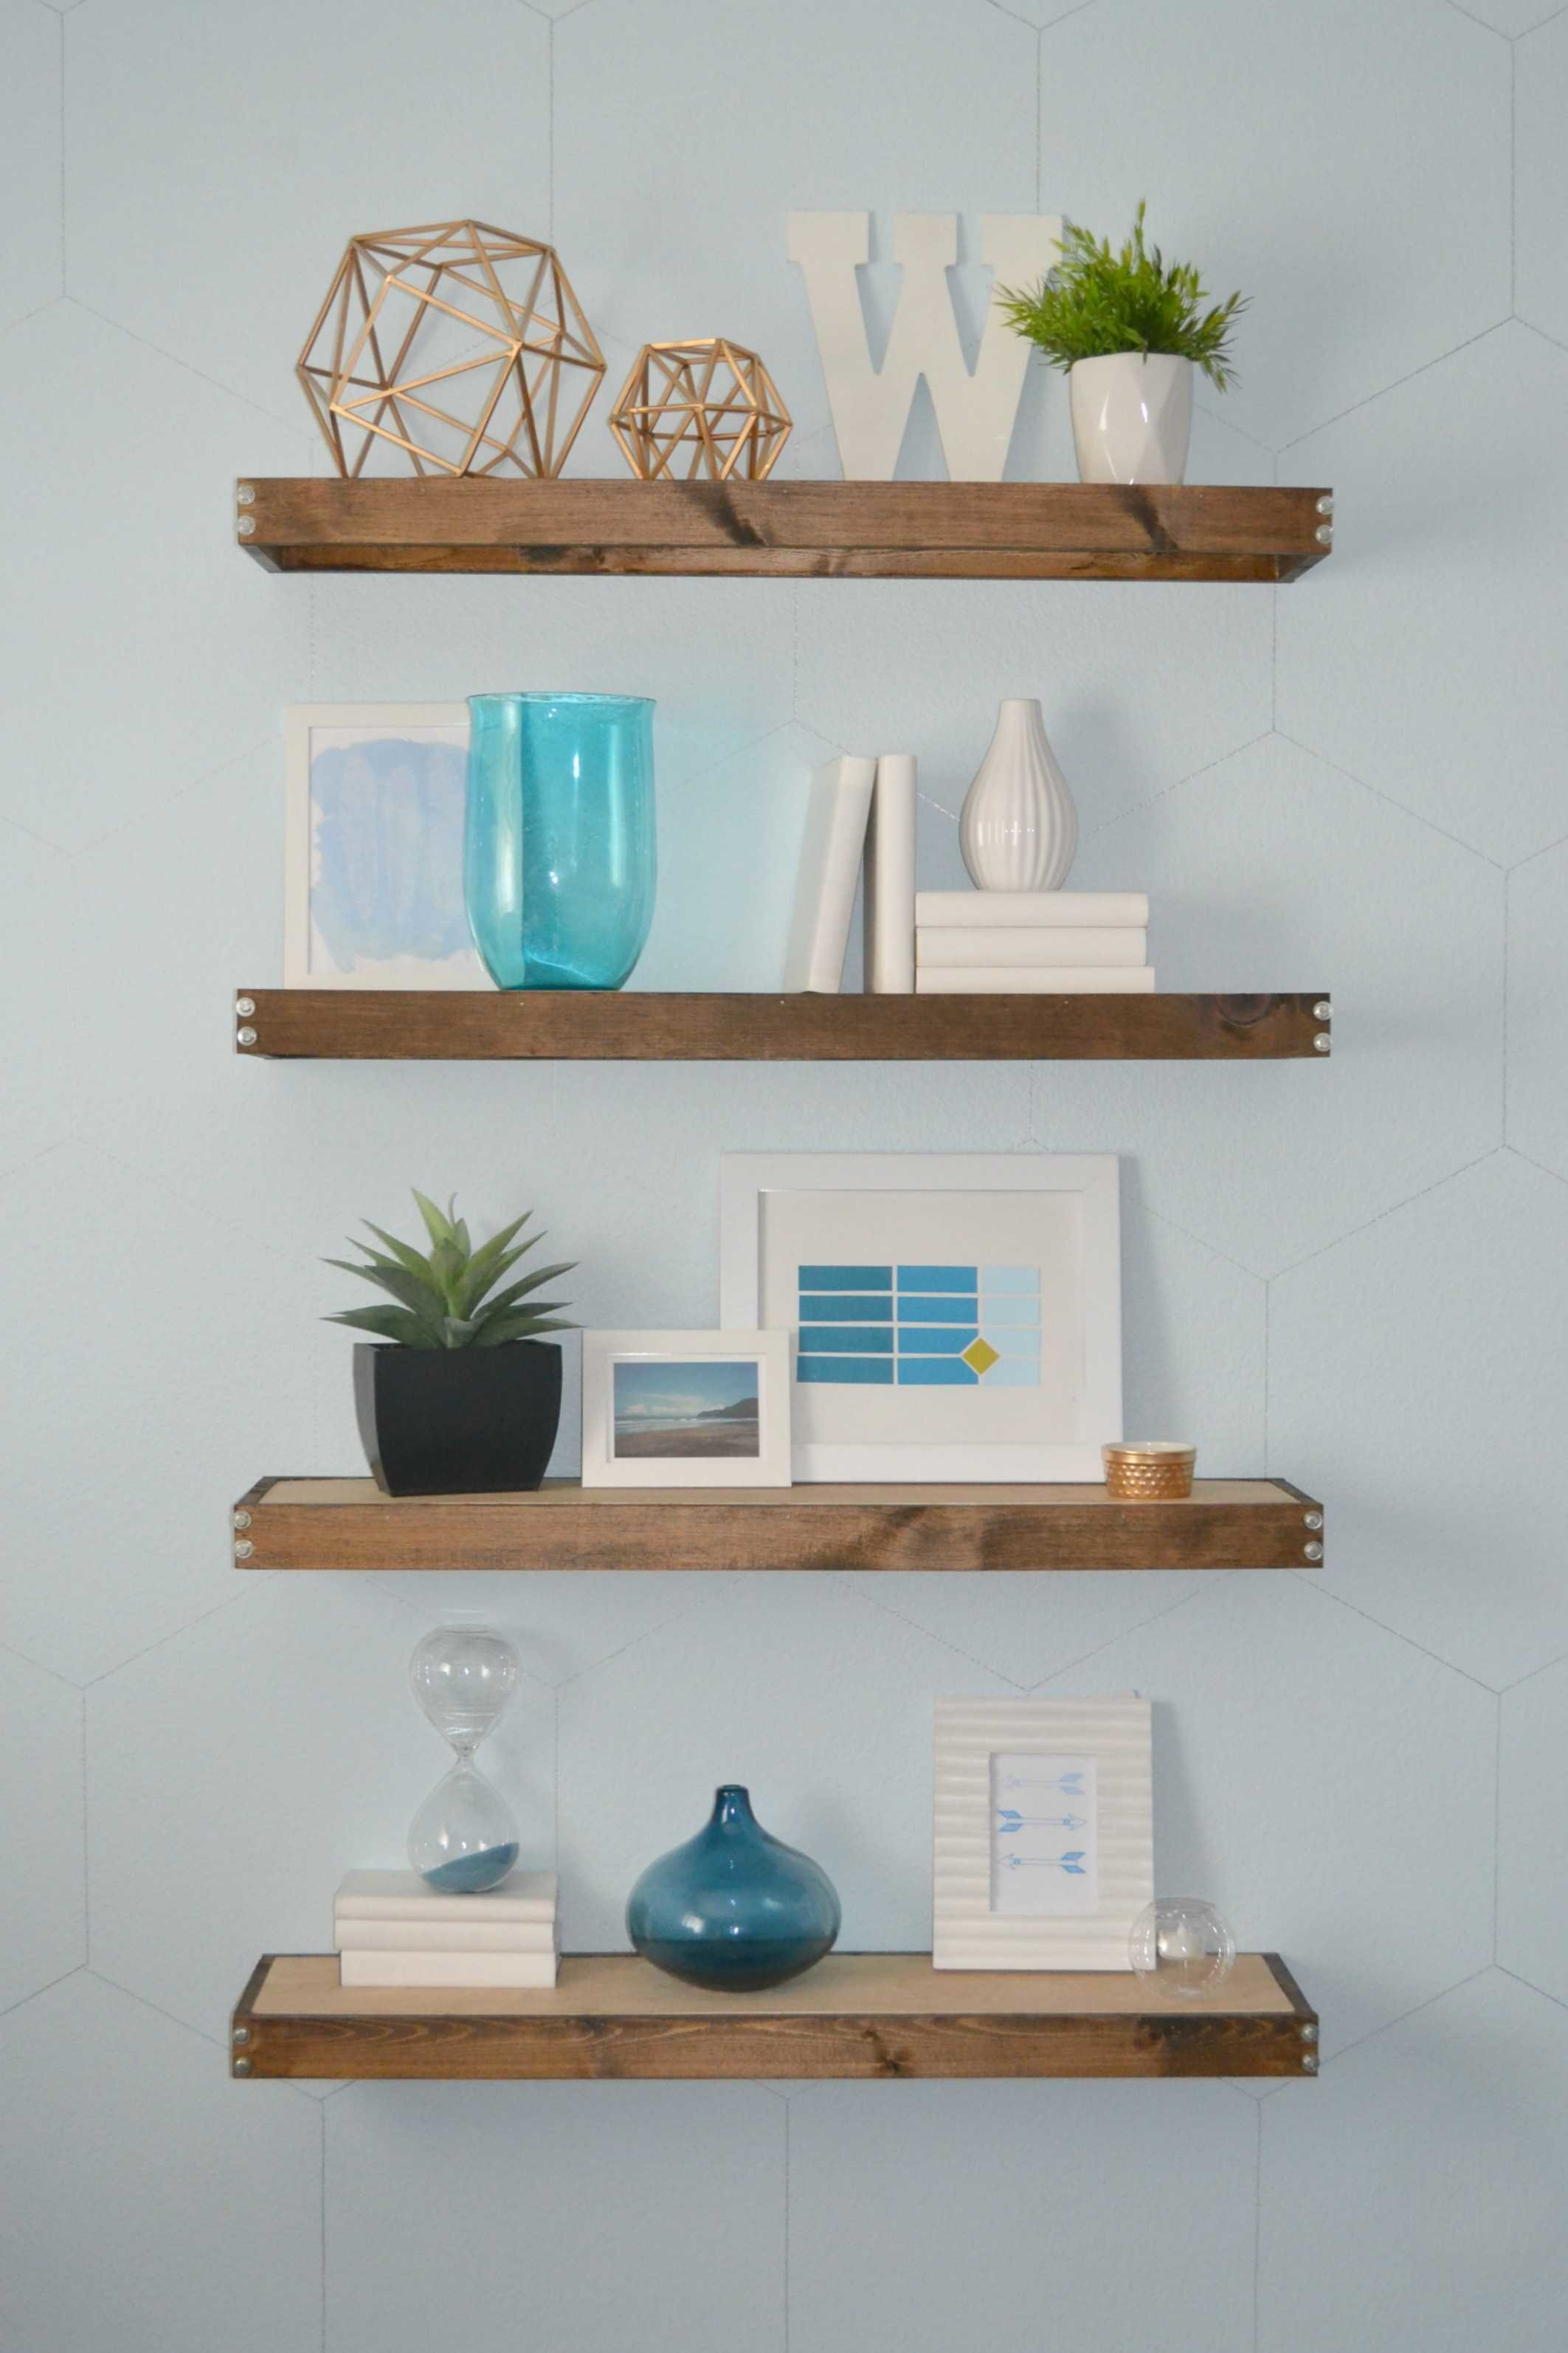 diy rustic modern floating shelves part one inch deep garage wall storage ideas clothes single shelf railway sleeper mantle bathroom furniture corner bookshelf espresso prepac